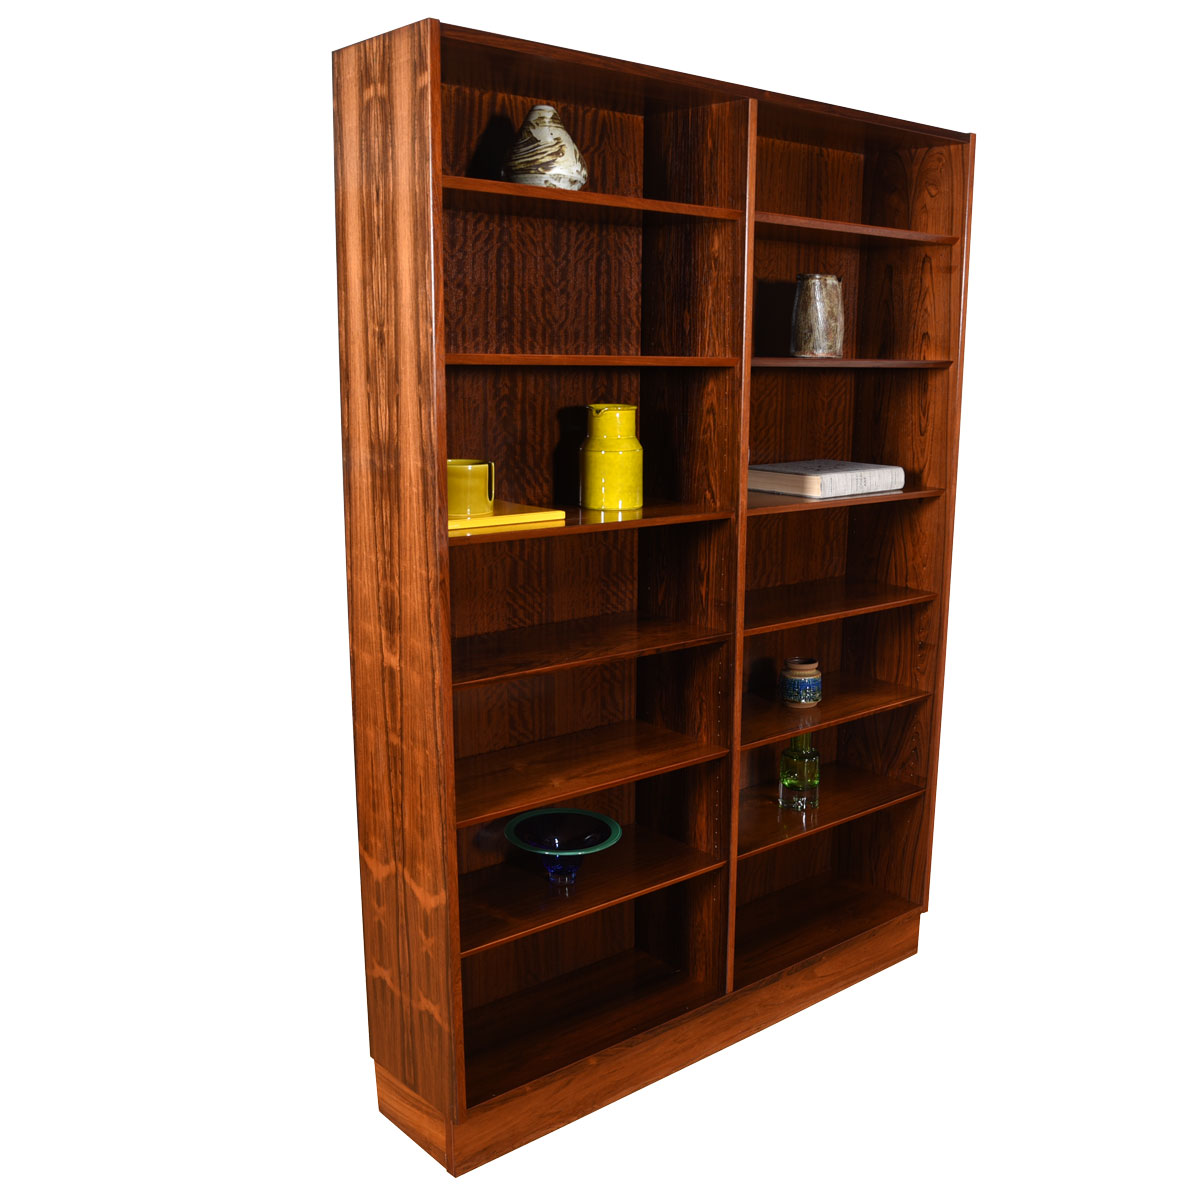 54″ Danish Modern Bookcase in Rosewood with Adjustable Shelves